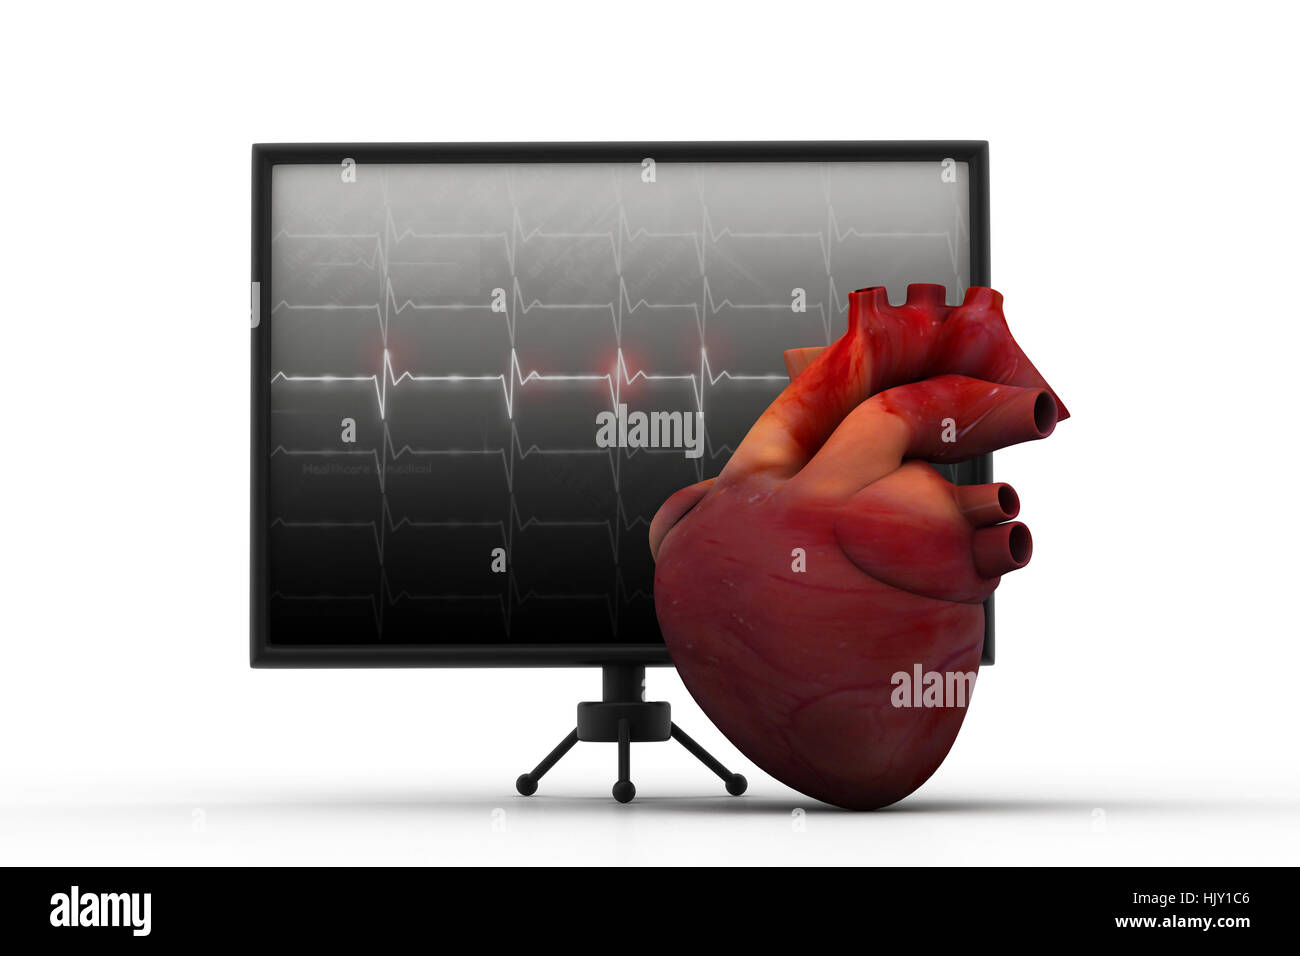 Human heart with ECG heart beat monitor	 - Stock Image